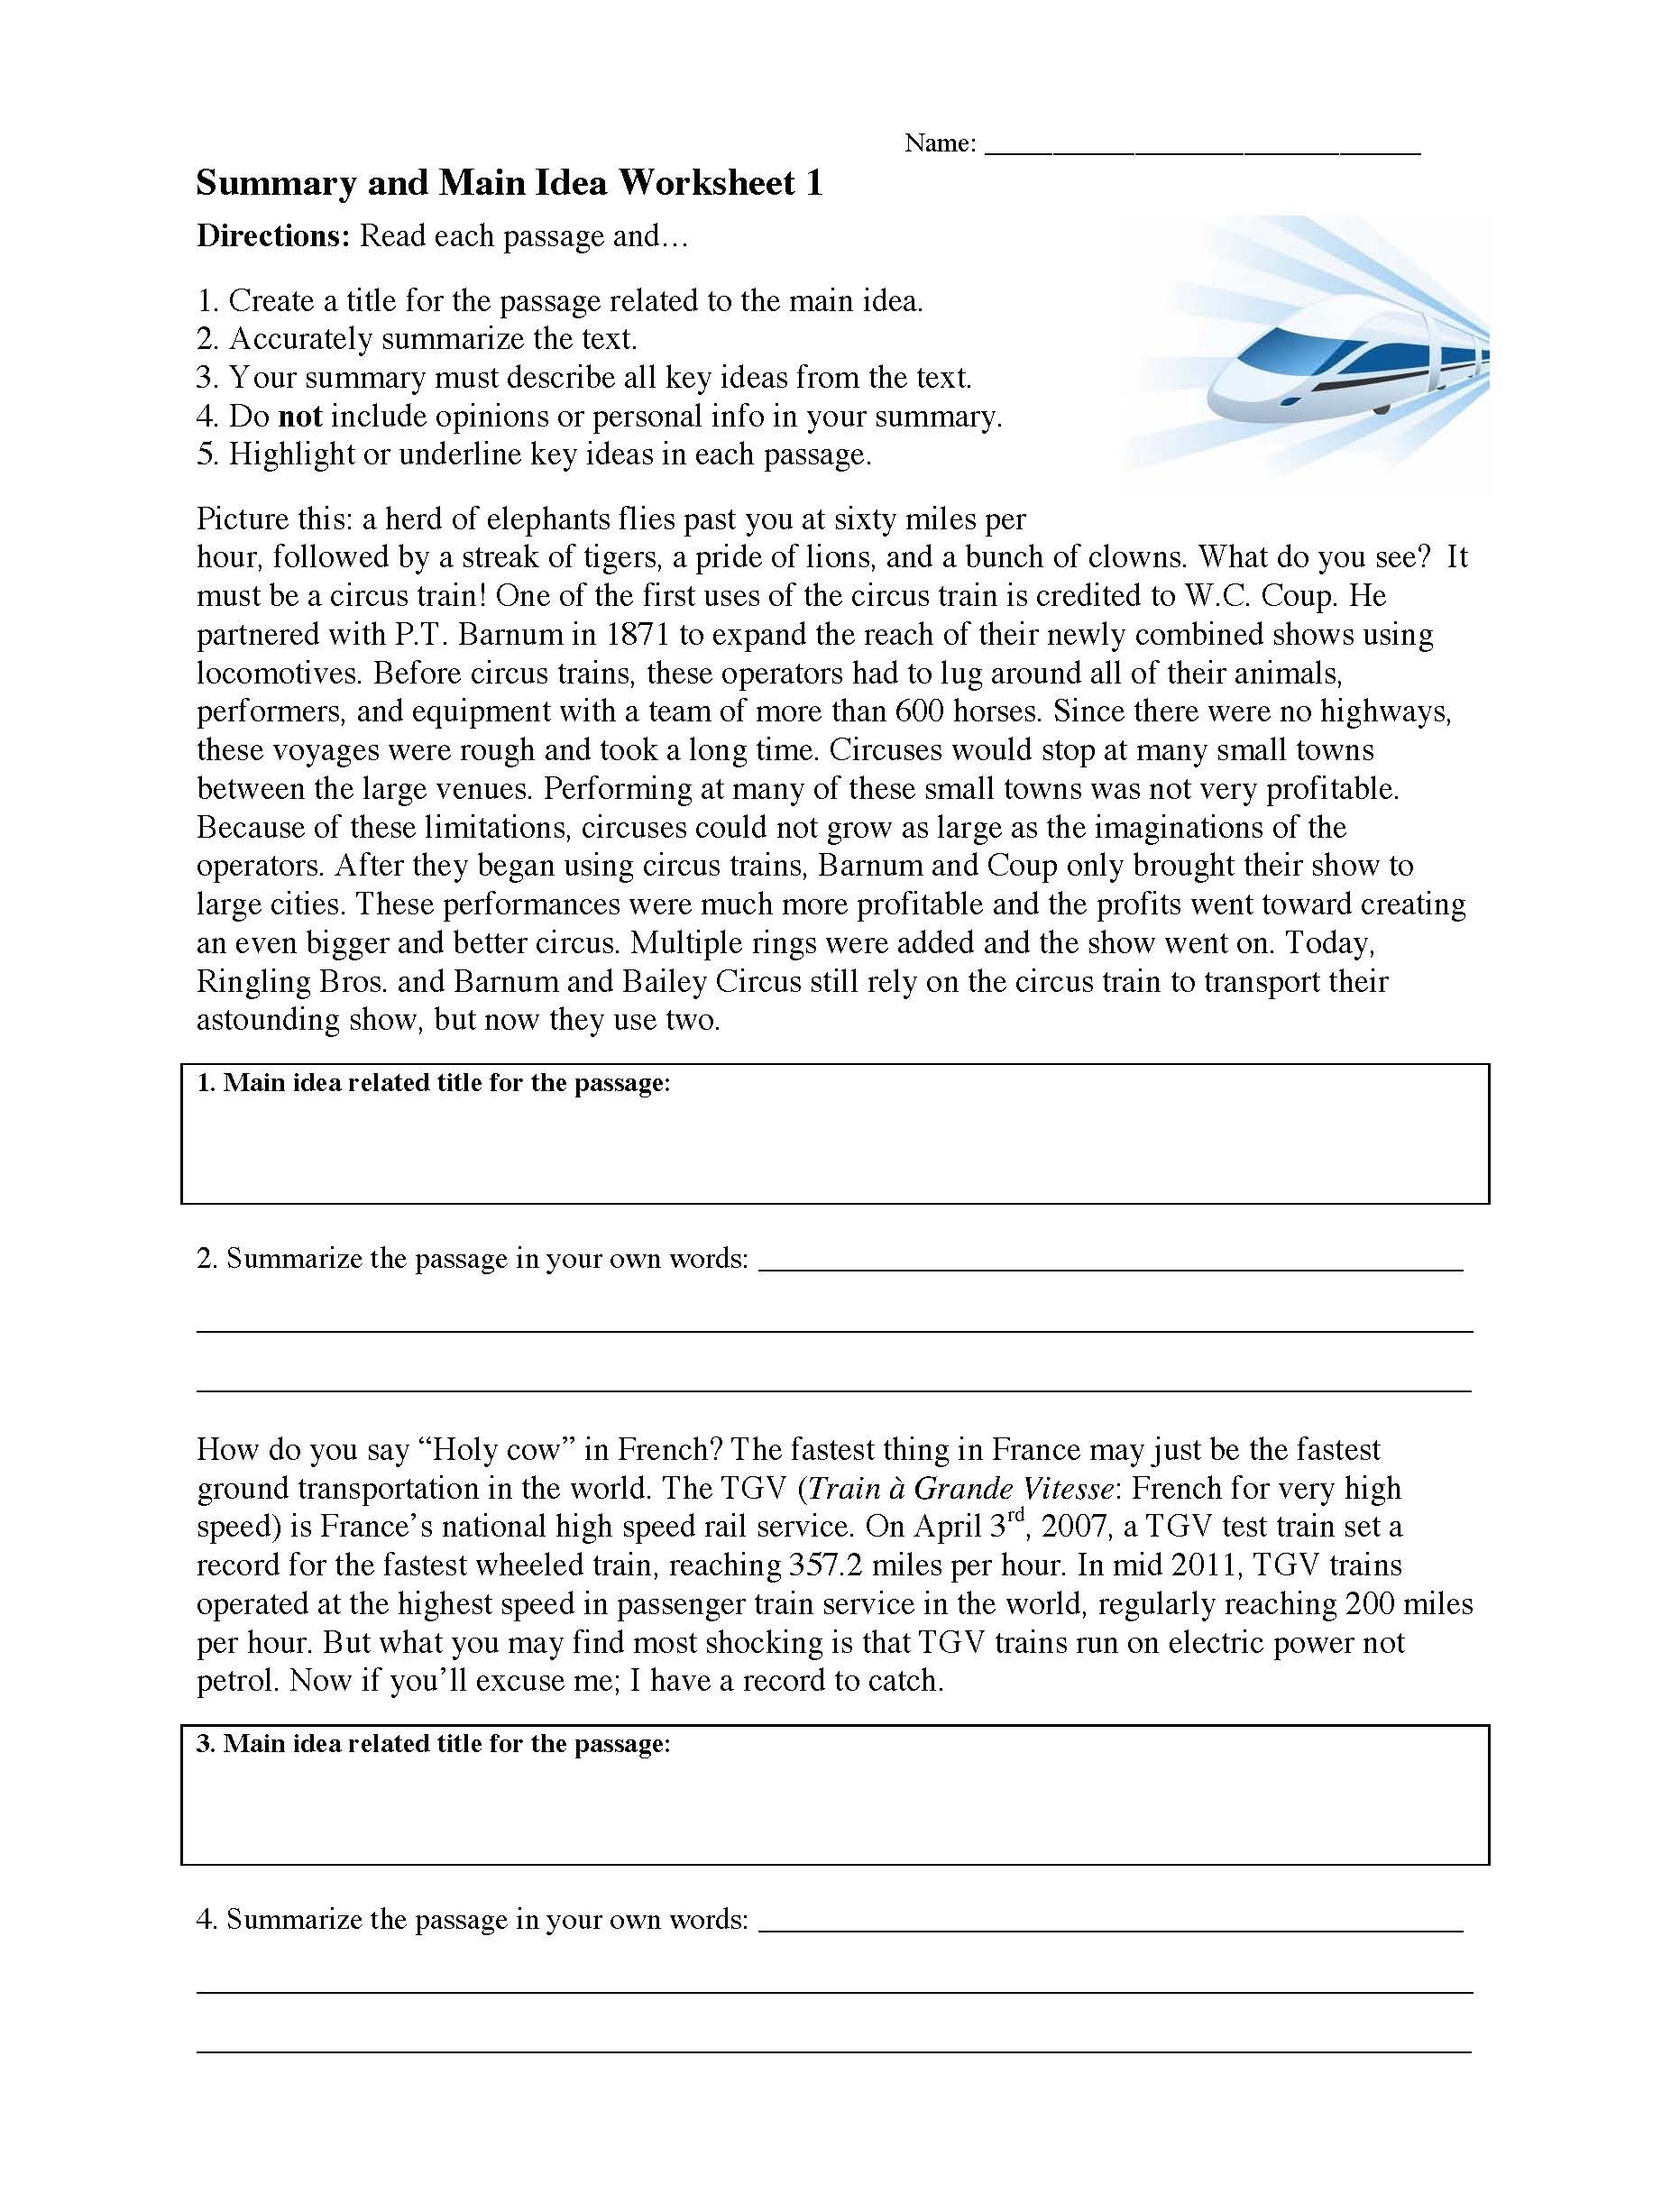 Summary Worksheets 2nd Grade Summarizing Worksheets Learn to Summarize